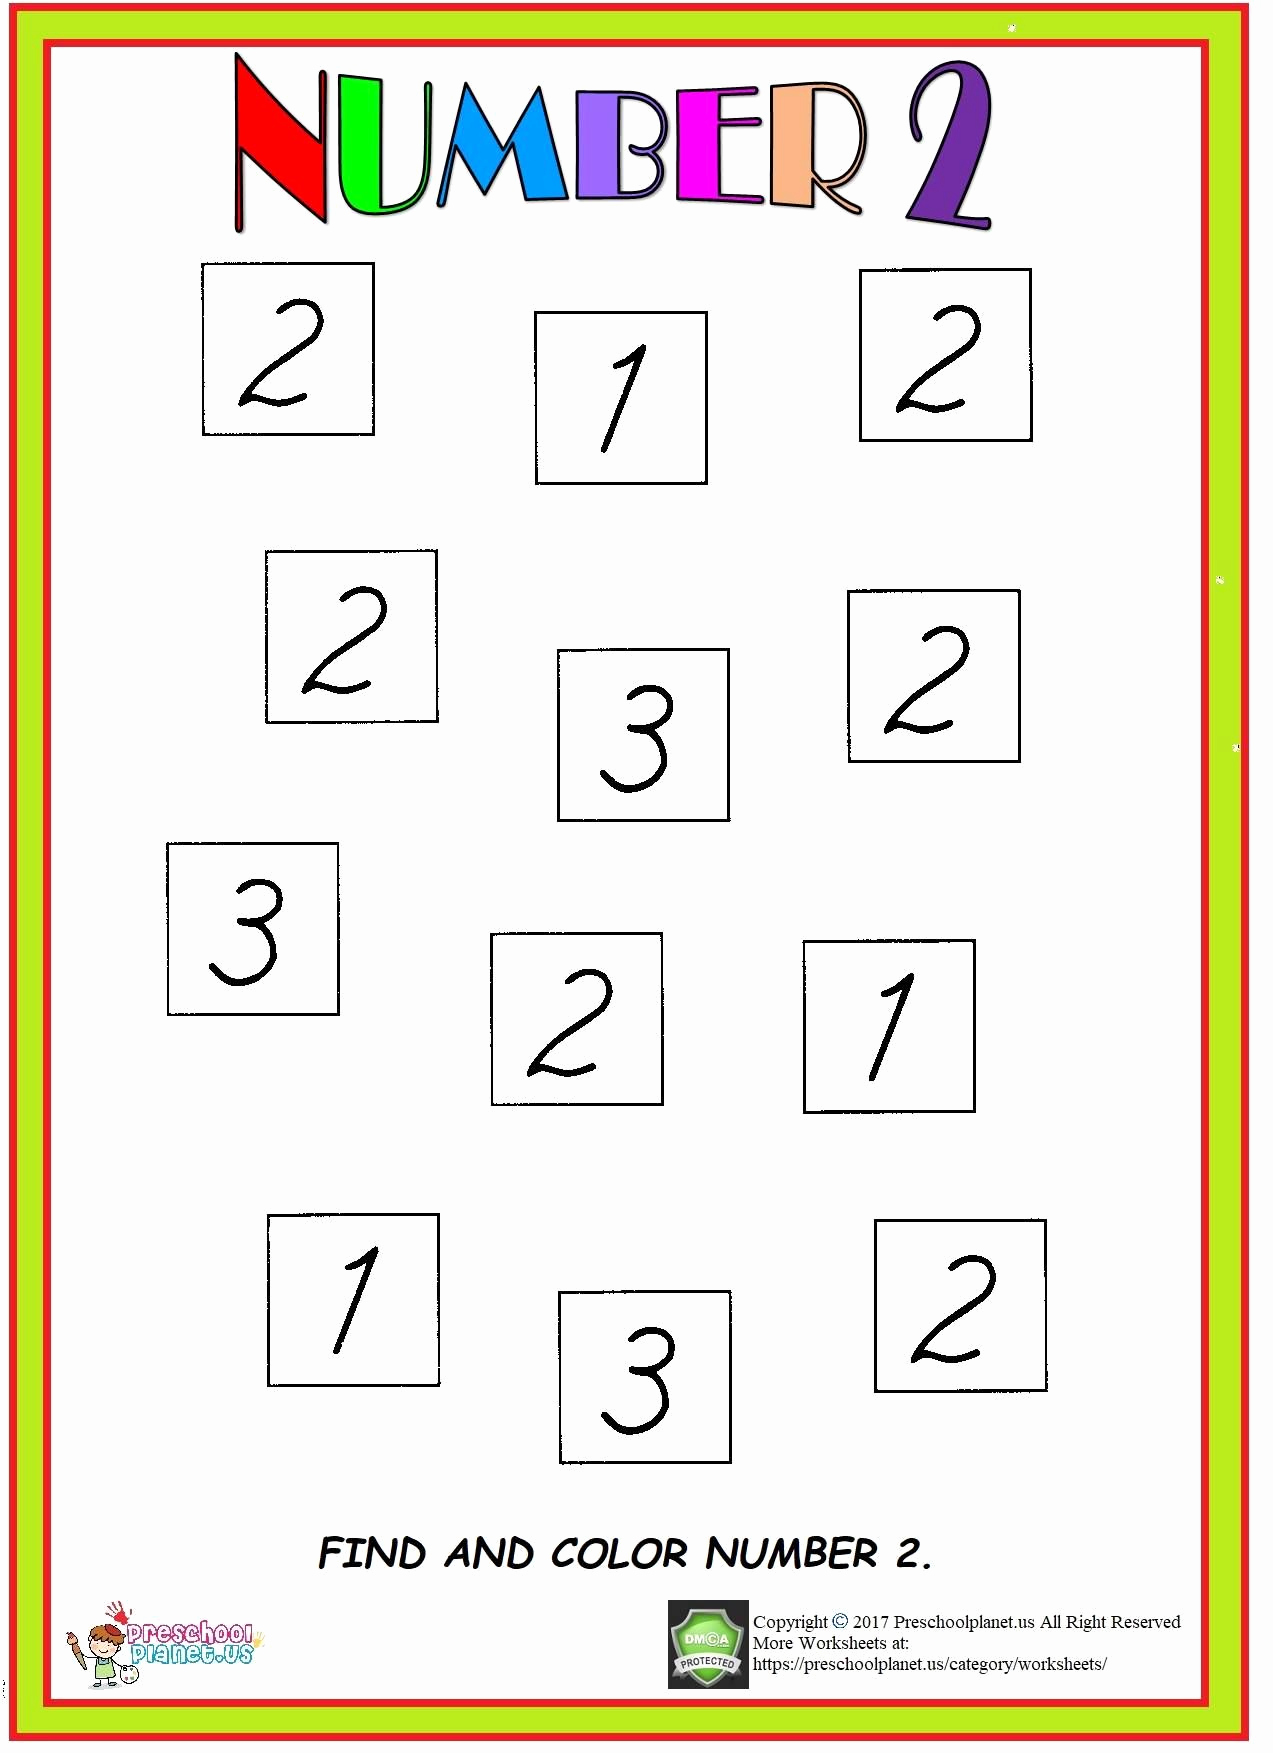 Number 2 Worksheets for Preschool Unique Number 2 Worksheet Here is Number 2 Worksheet for